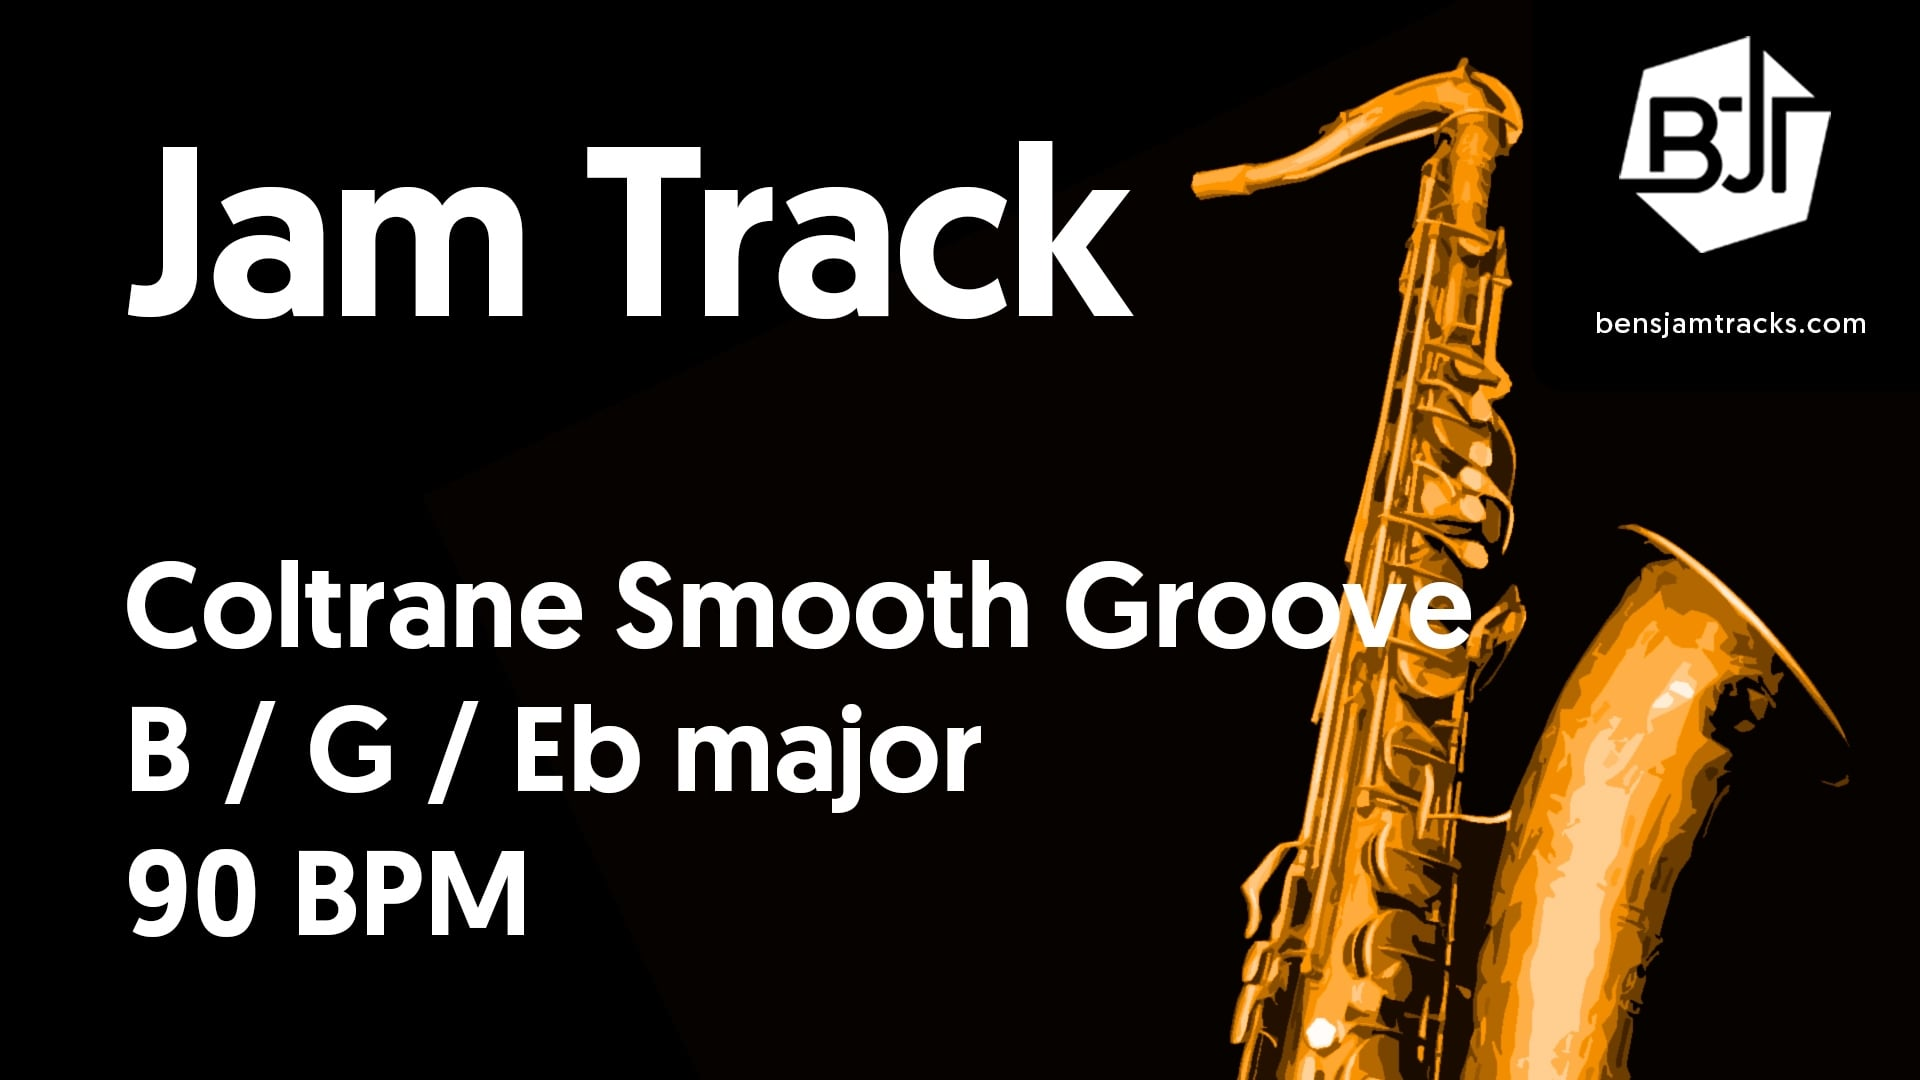 Coltrane Smooth Groove in B/G/Eb major – BJT #40